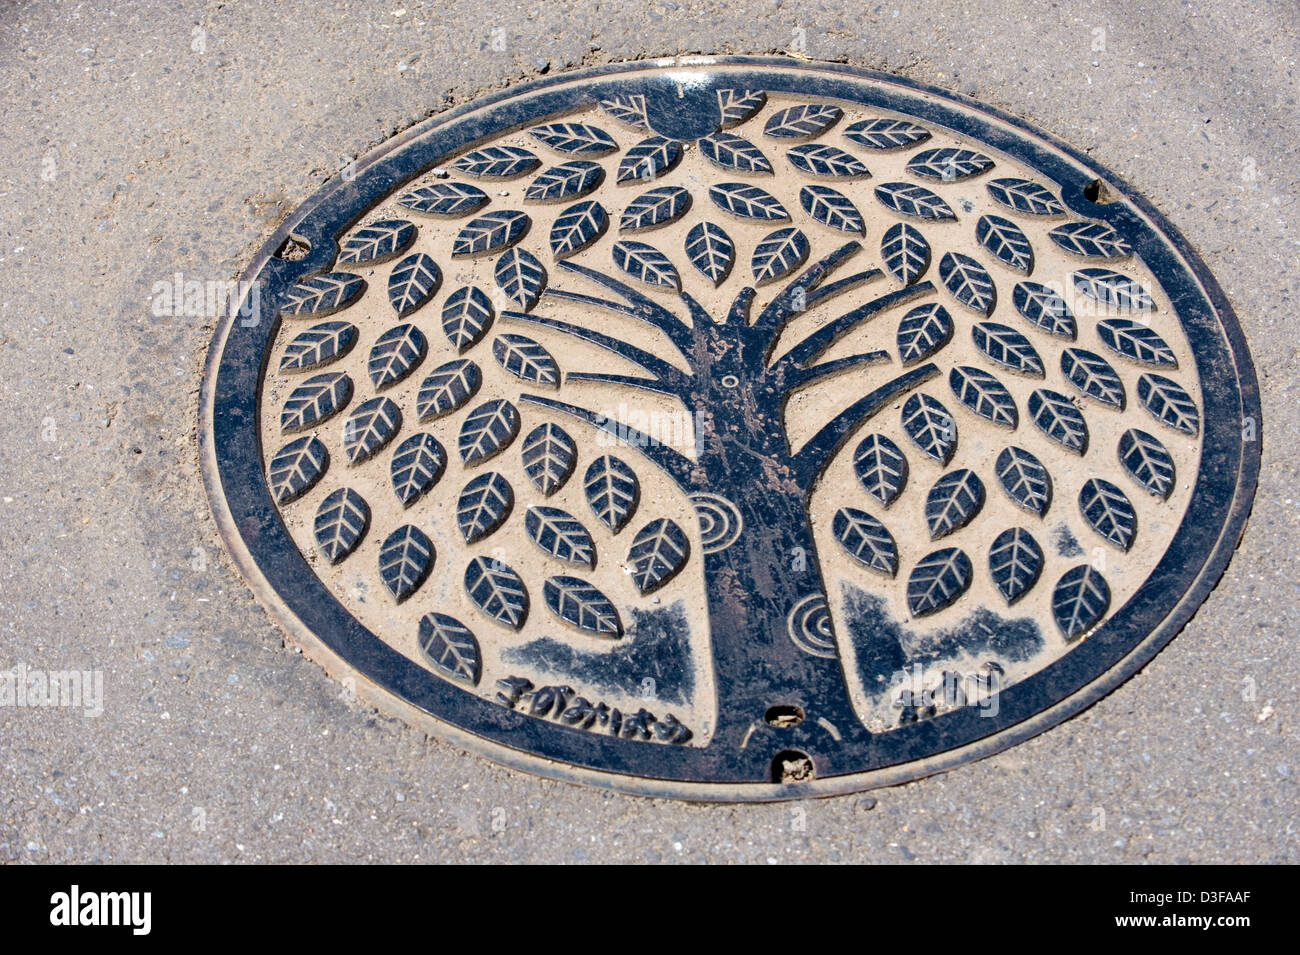 Artistic manhole cover in the town of Sagami, Kanagawa Prefecture shows a tree with leaves. - Stock Image